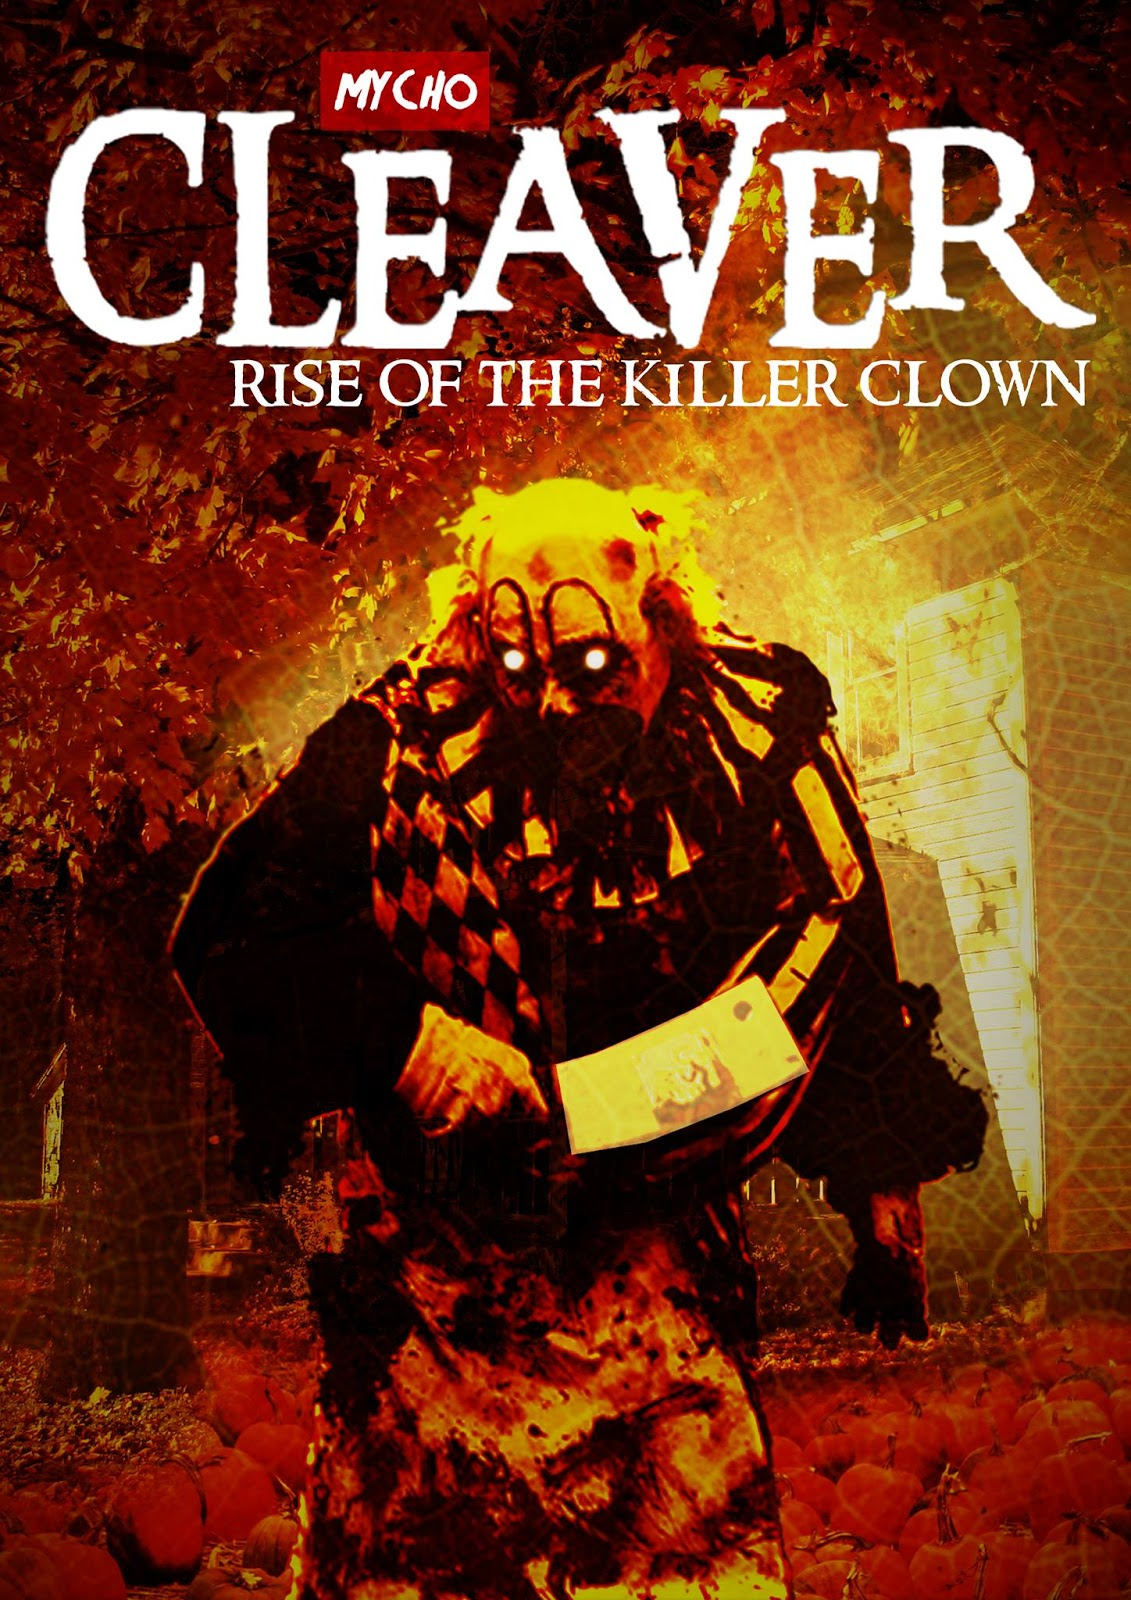 123movies Watch Online Cleaver: Rise of the Killer Clown (2015) Full Movie HD putlocker